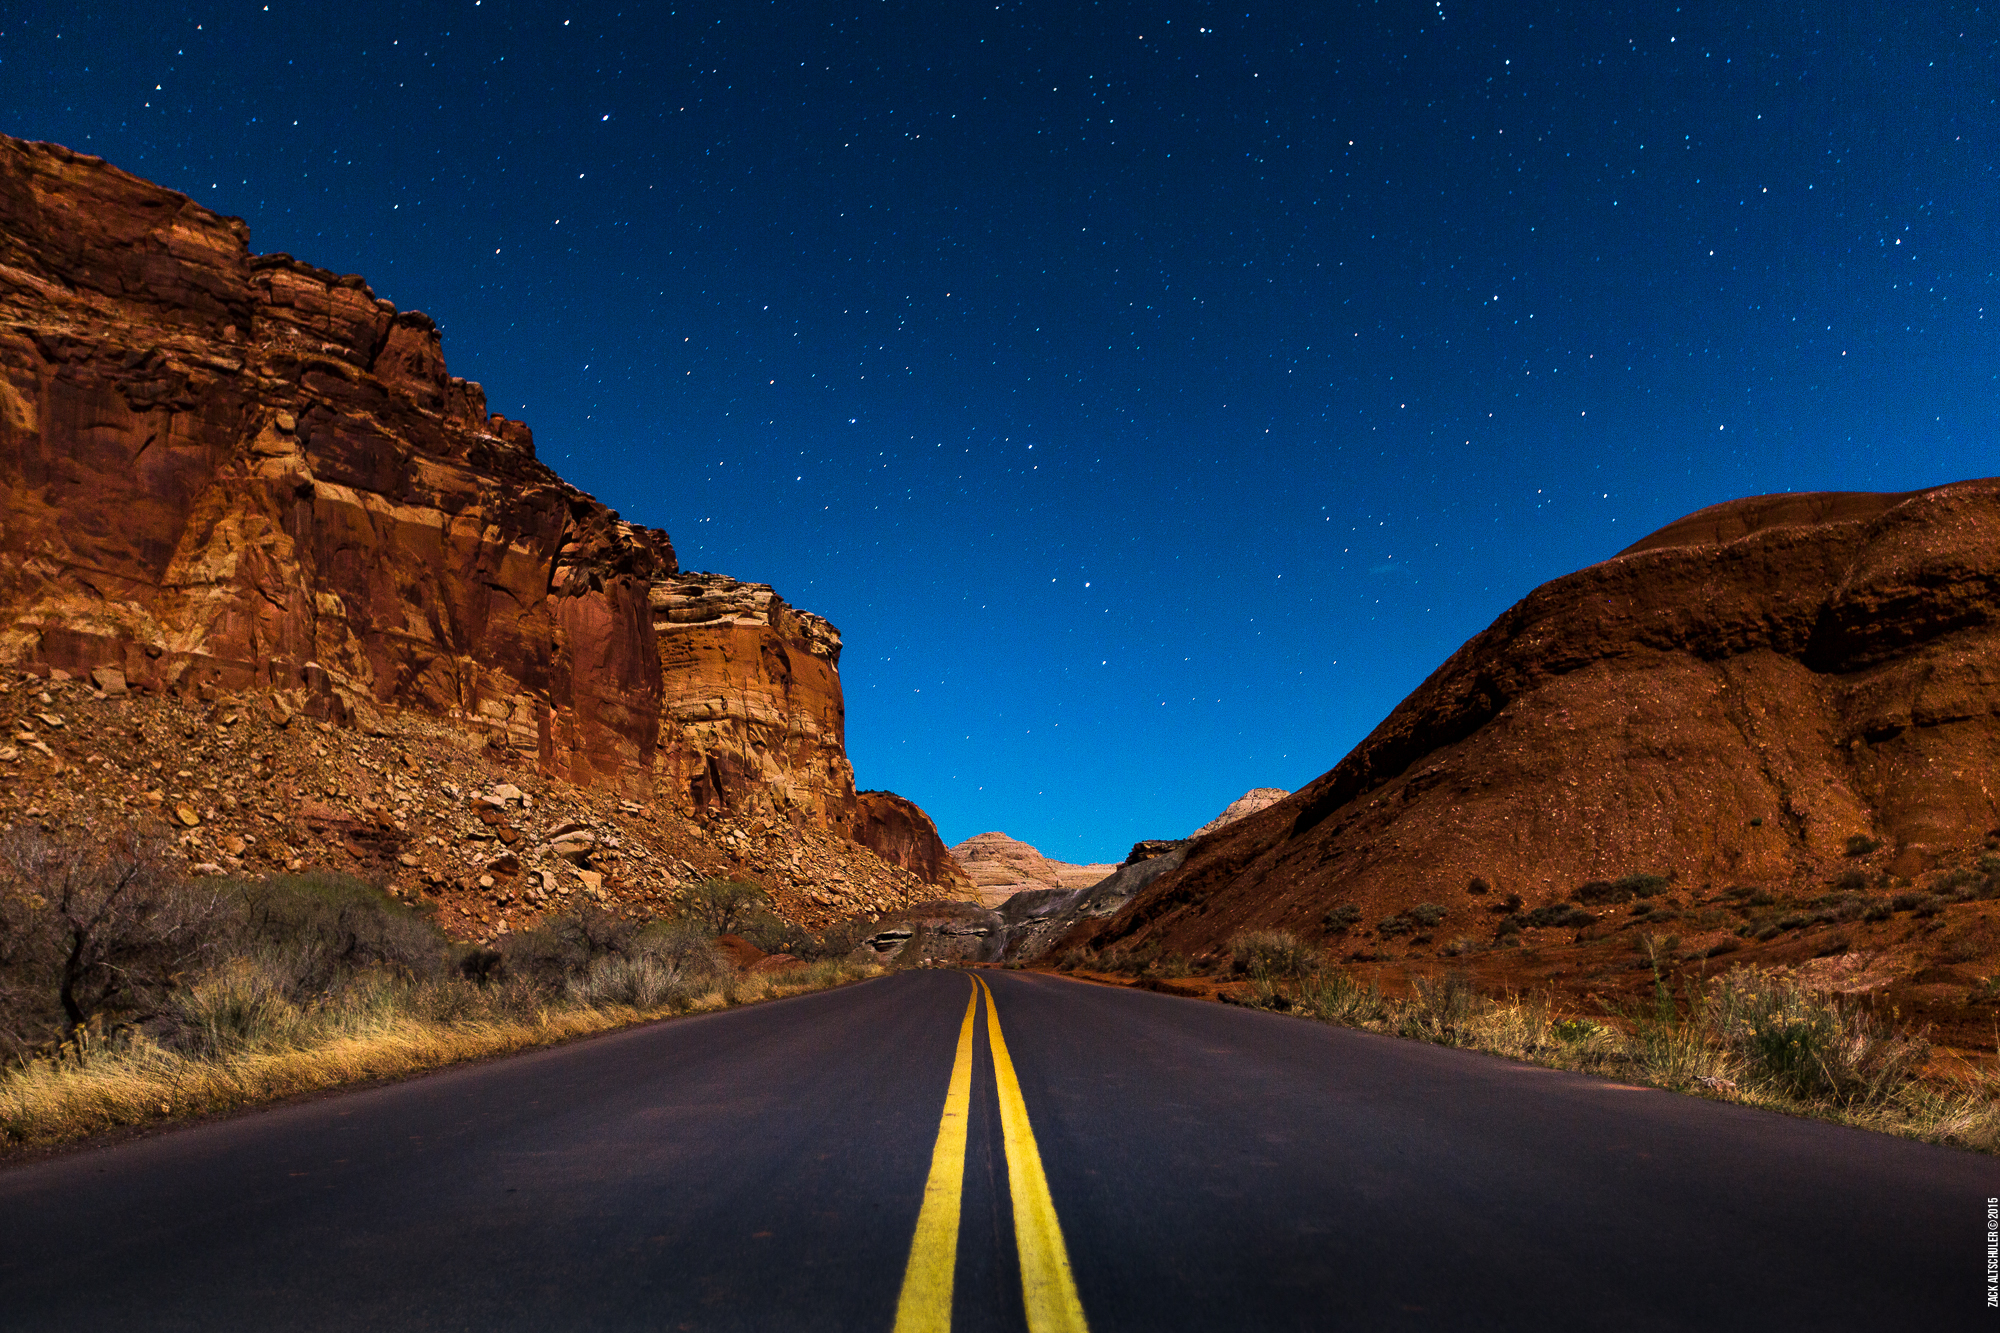 11_CapitolReef_DownRoad.jpg